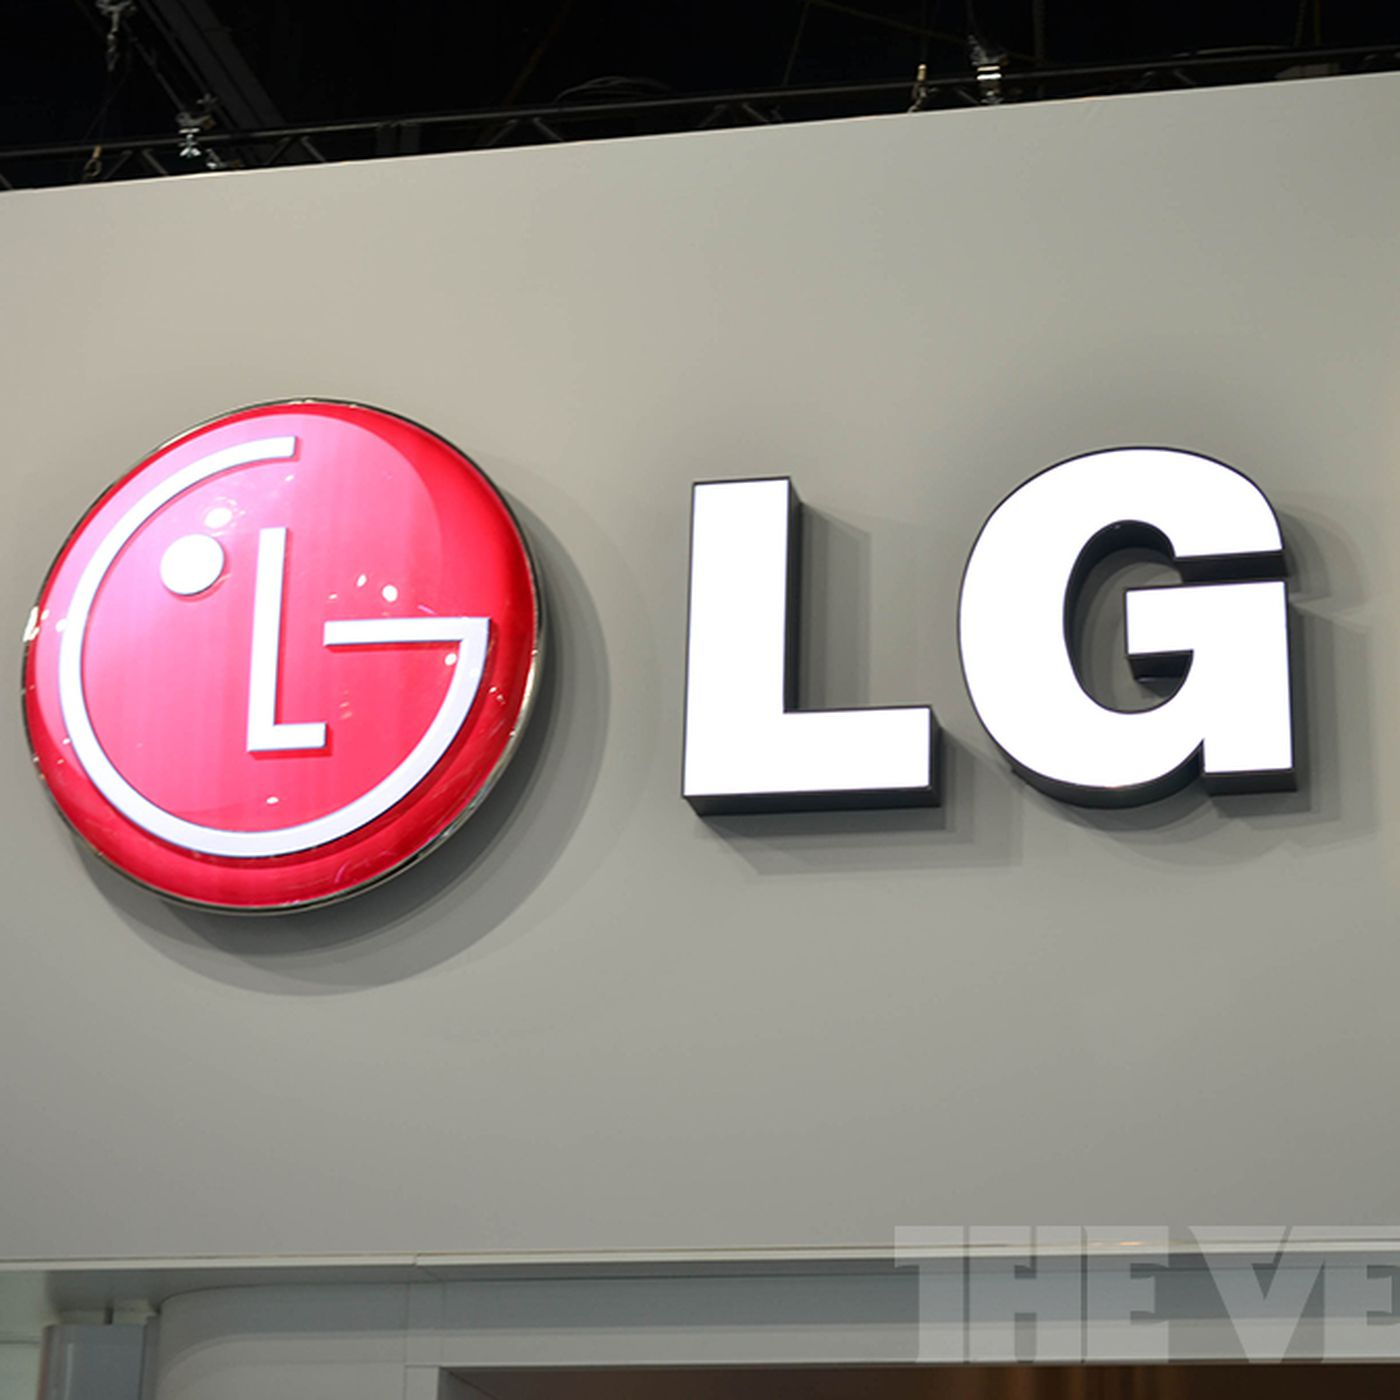 Despite Quitting Smartphone Business, LG Promises To Update Their Phones For 3 Years.